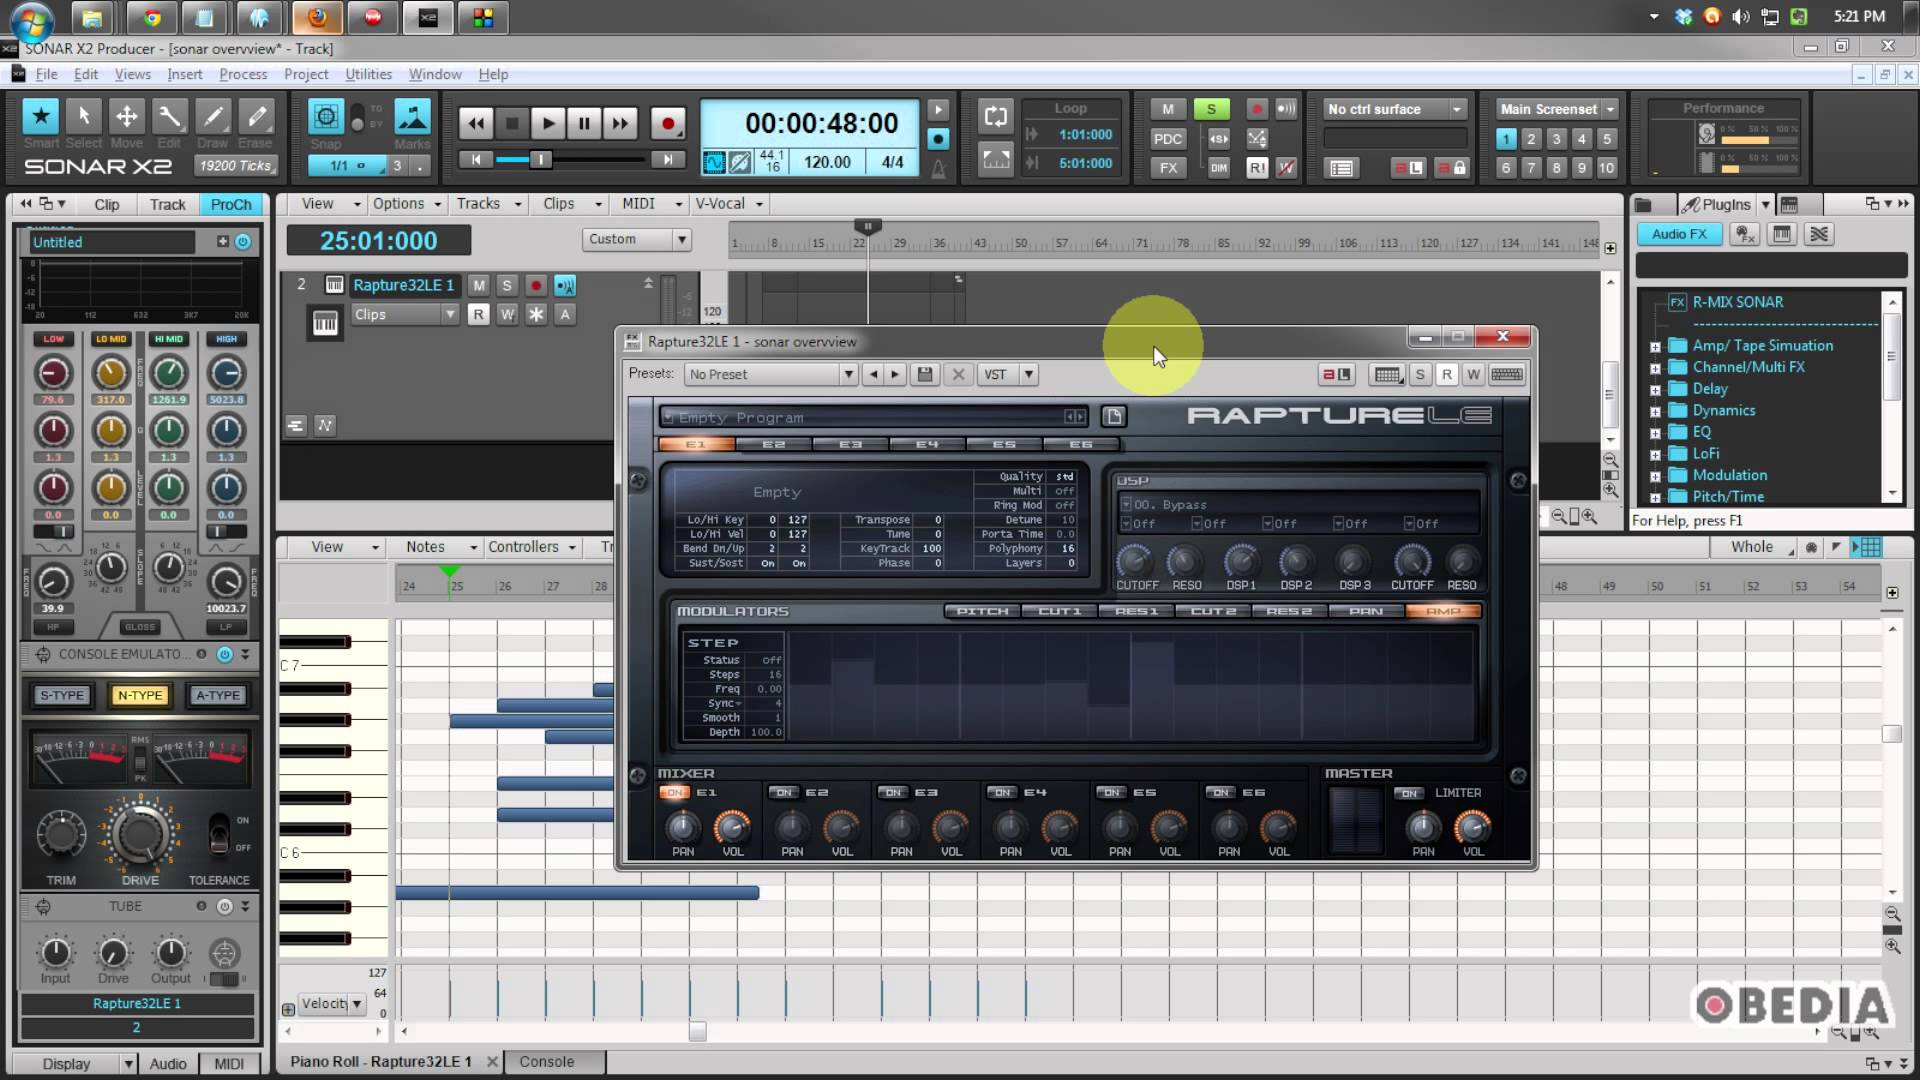 Cakewalk - Try SONAR free for 30 days